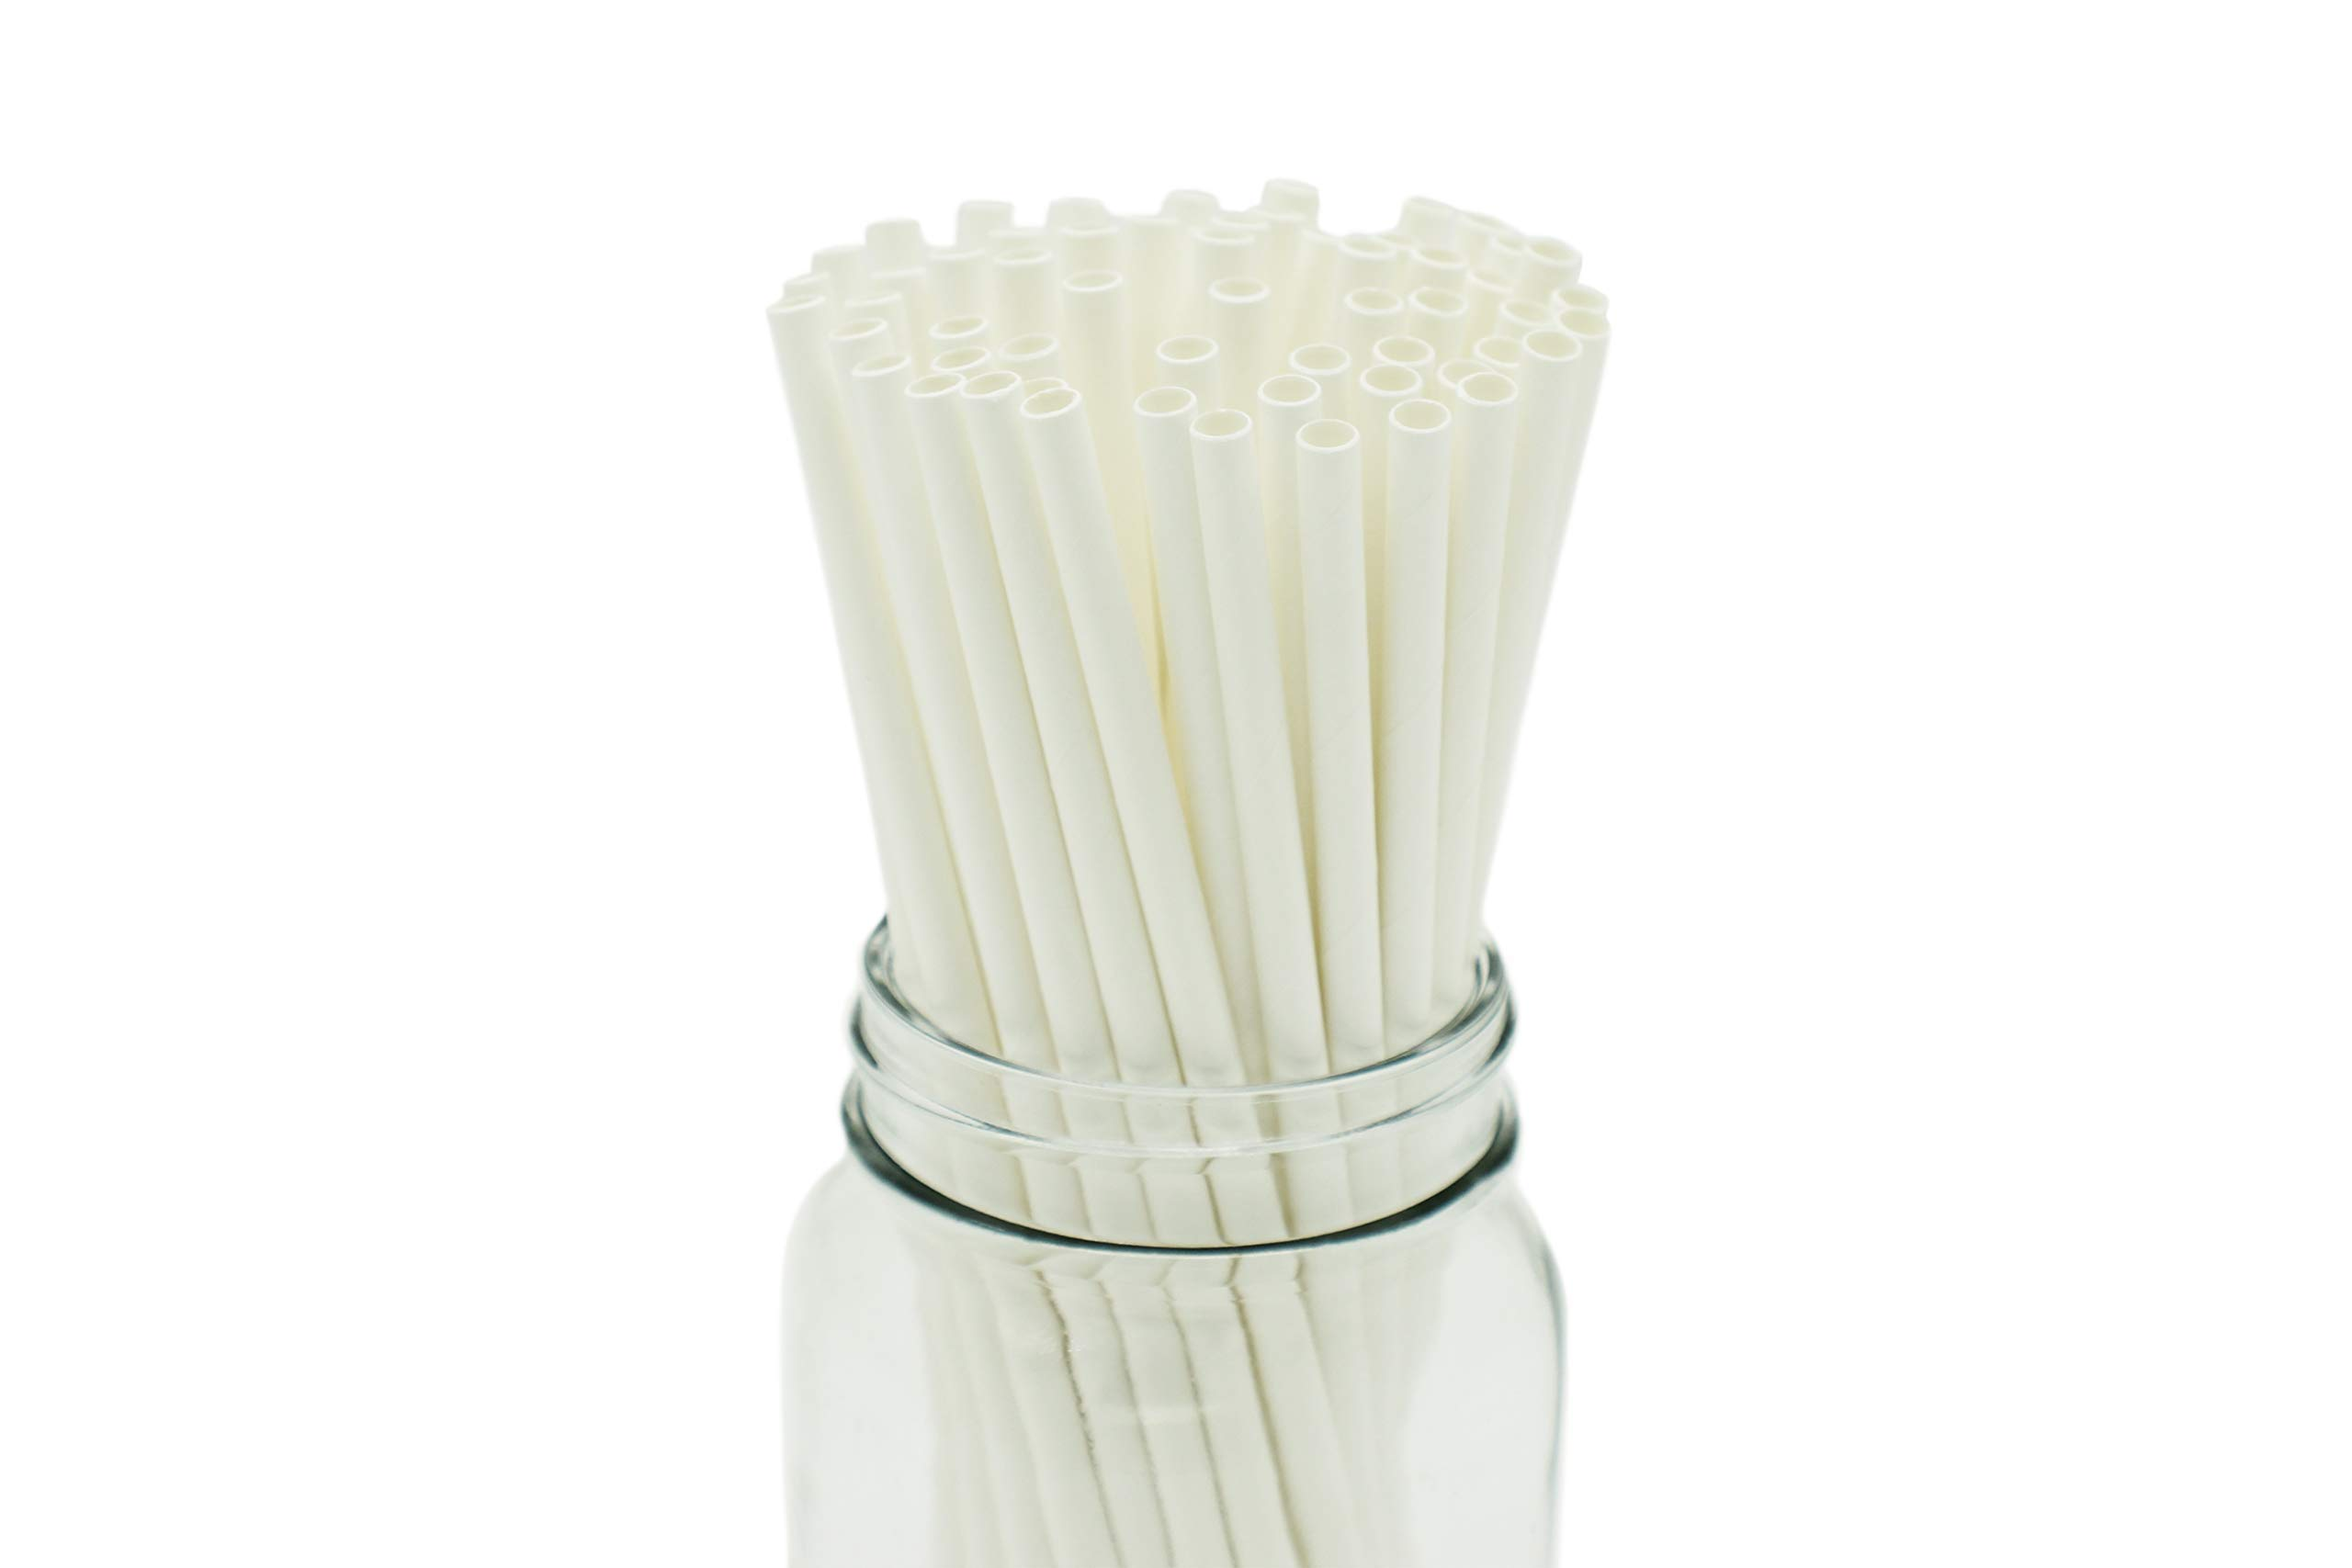 """[100 COUNT] Standard 7.5"""" Disposable Drinking Paper Straws Sturdy Natural White Smoothie Milkshake Milk Tea Restaurant Party (7.5 Inches Long, 6 Millimeters Thick, Dye Free Products, Treestraw"""